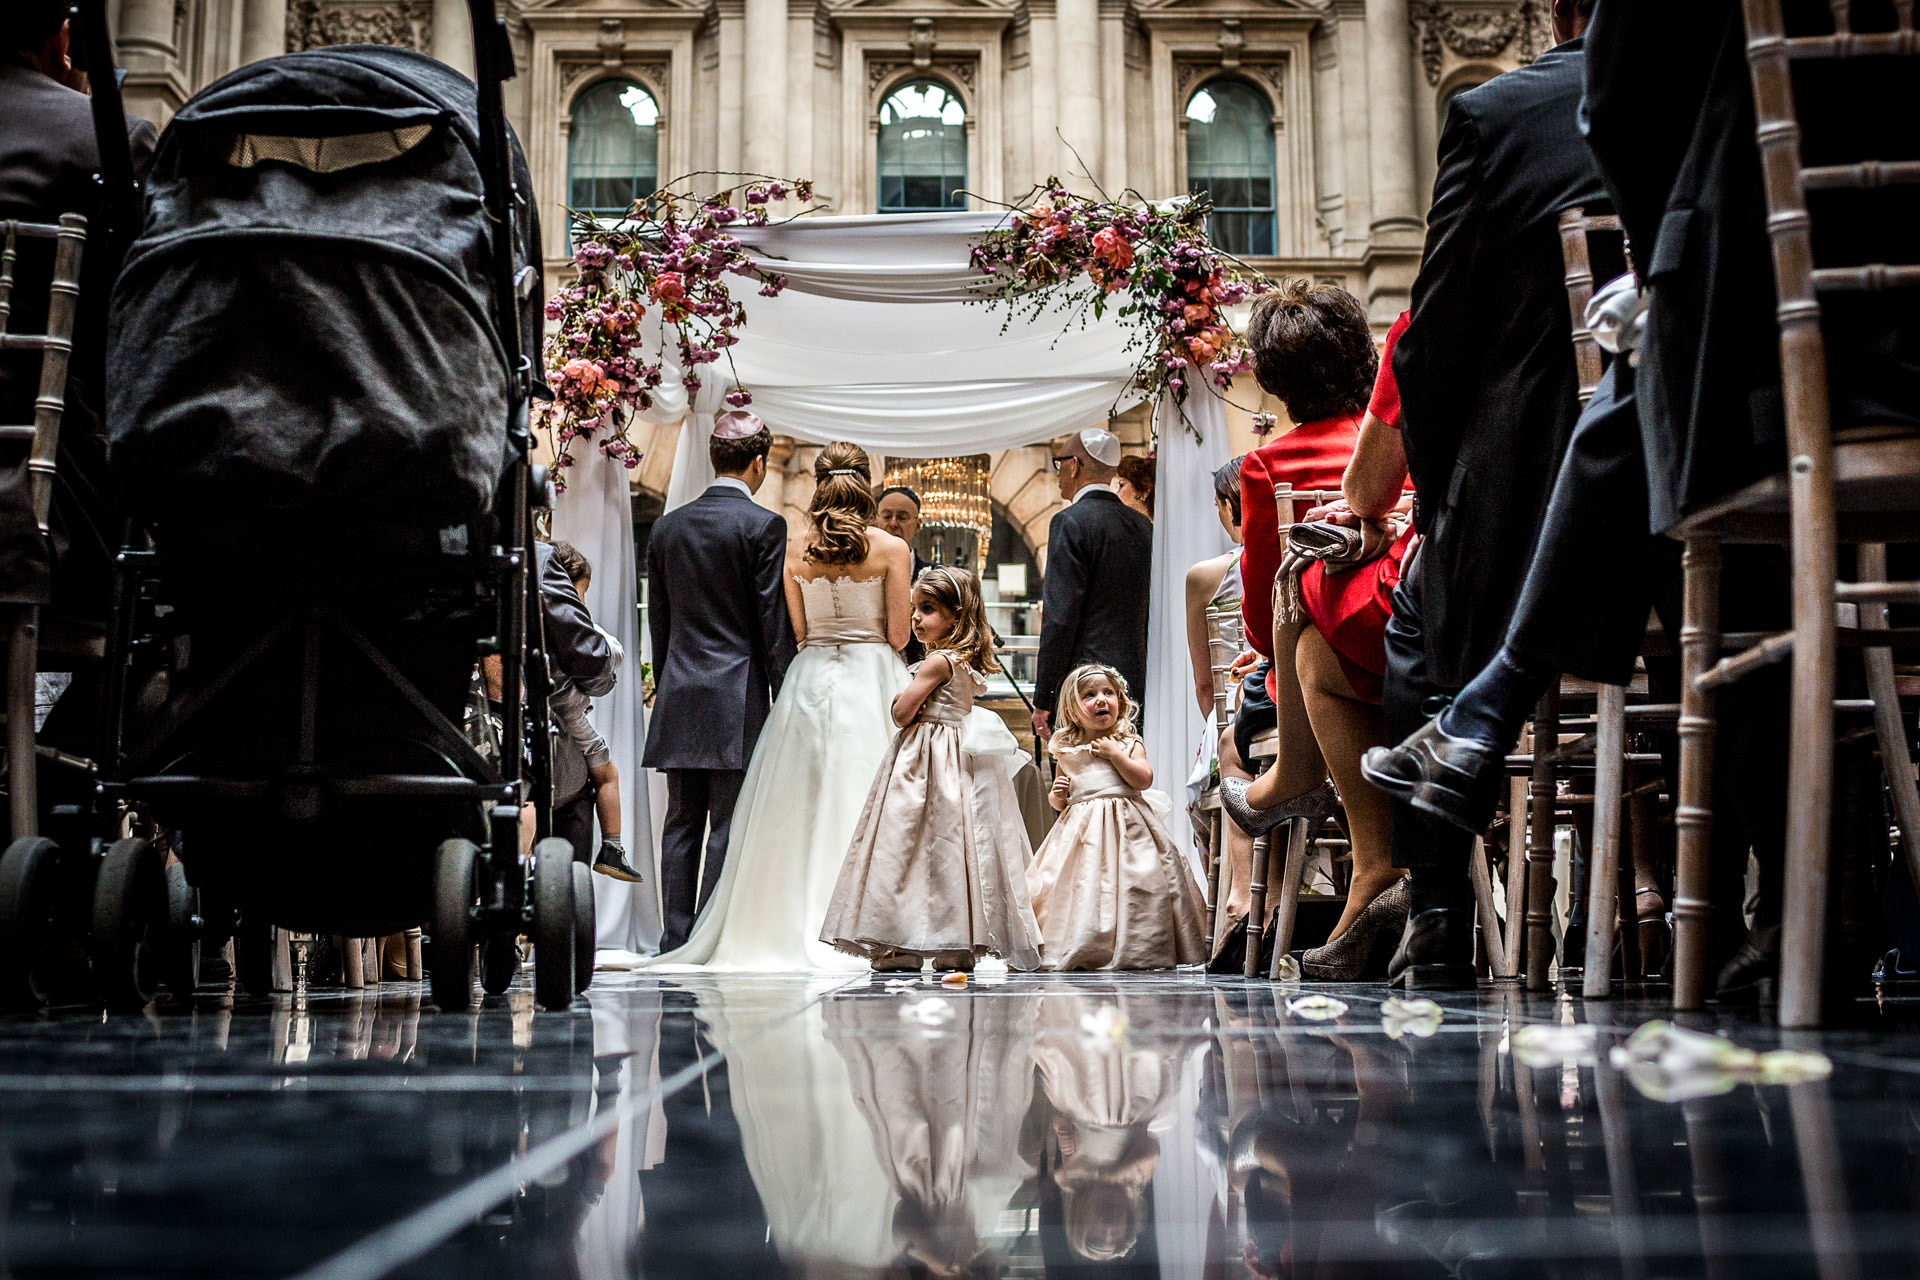 Royal Exchange London wedding photographer wedding ceremony